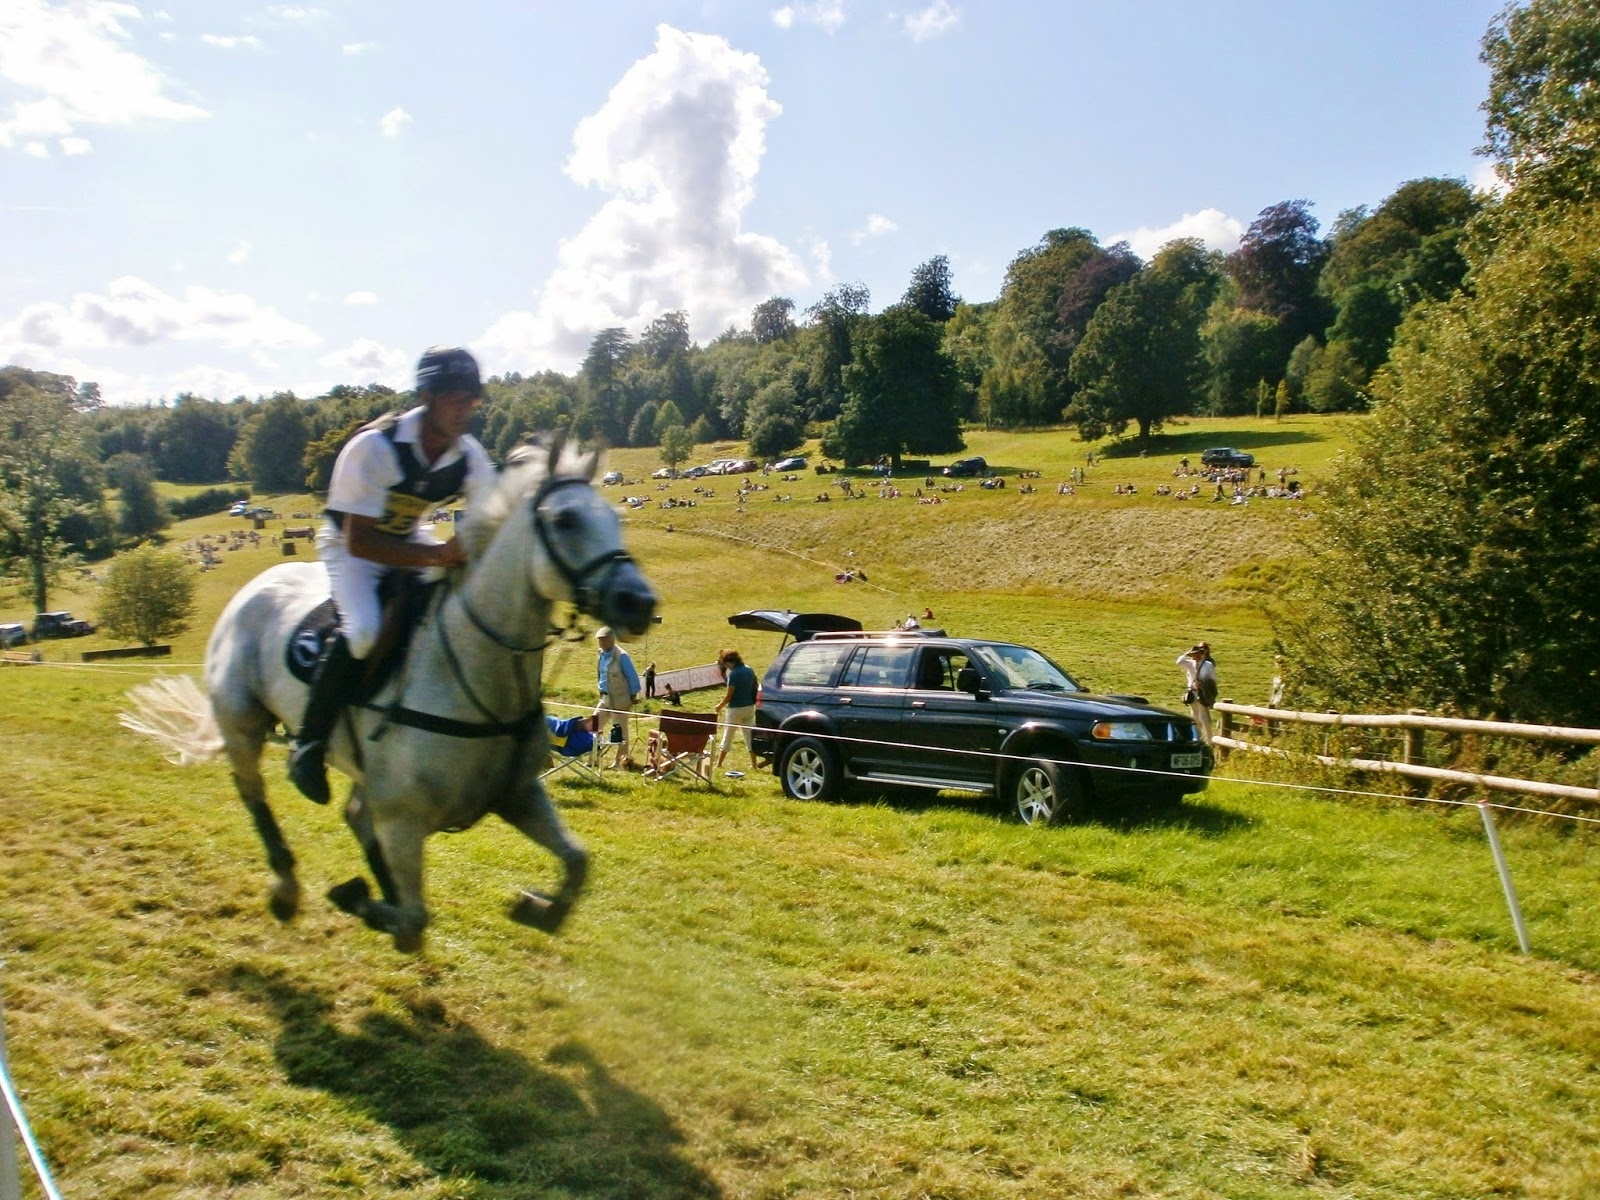 Andrew Nicholson at Gatcombe Festival of Eventing